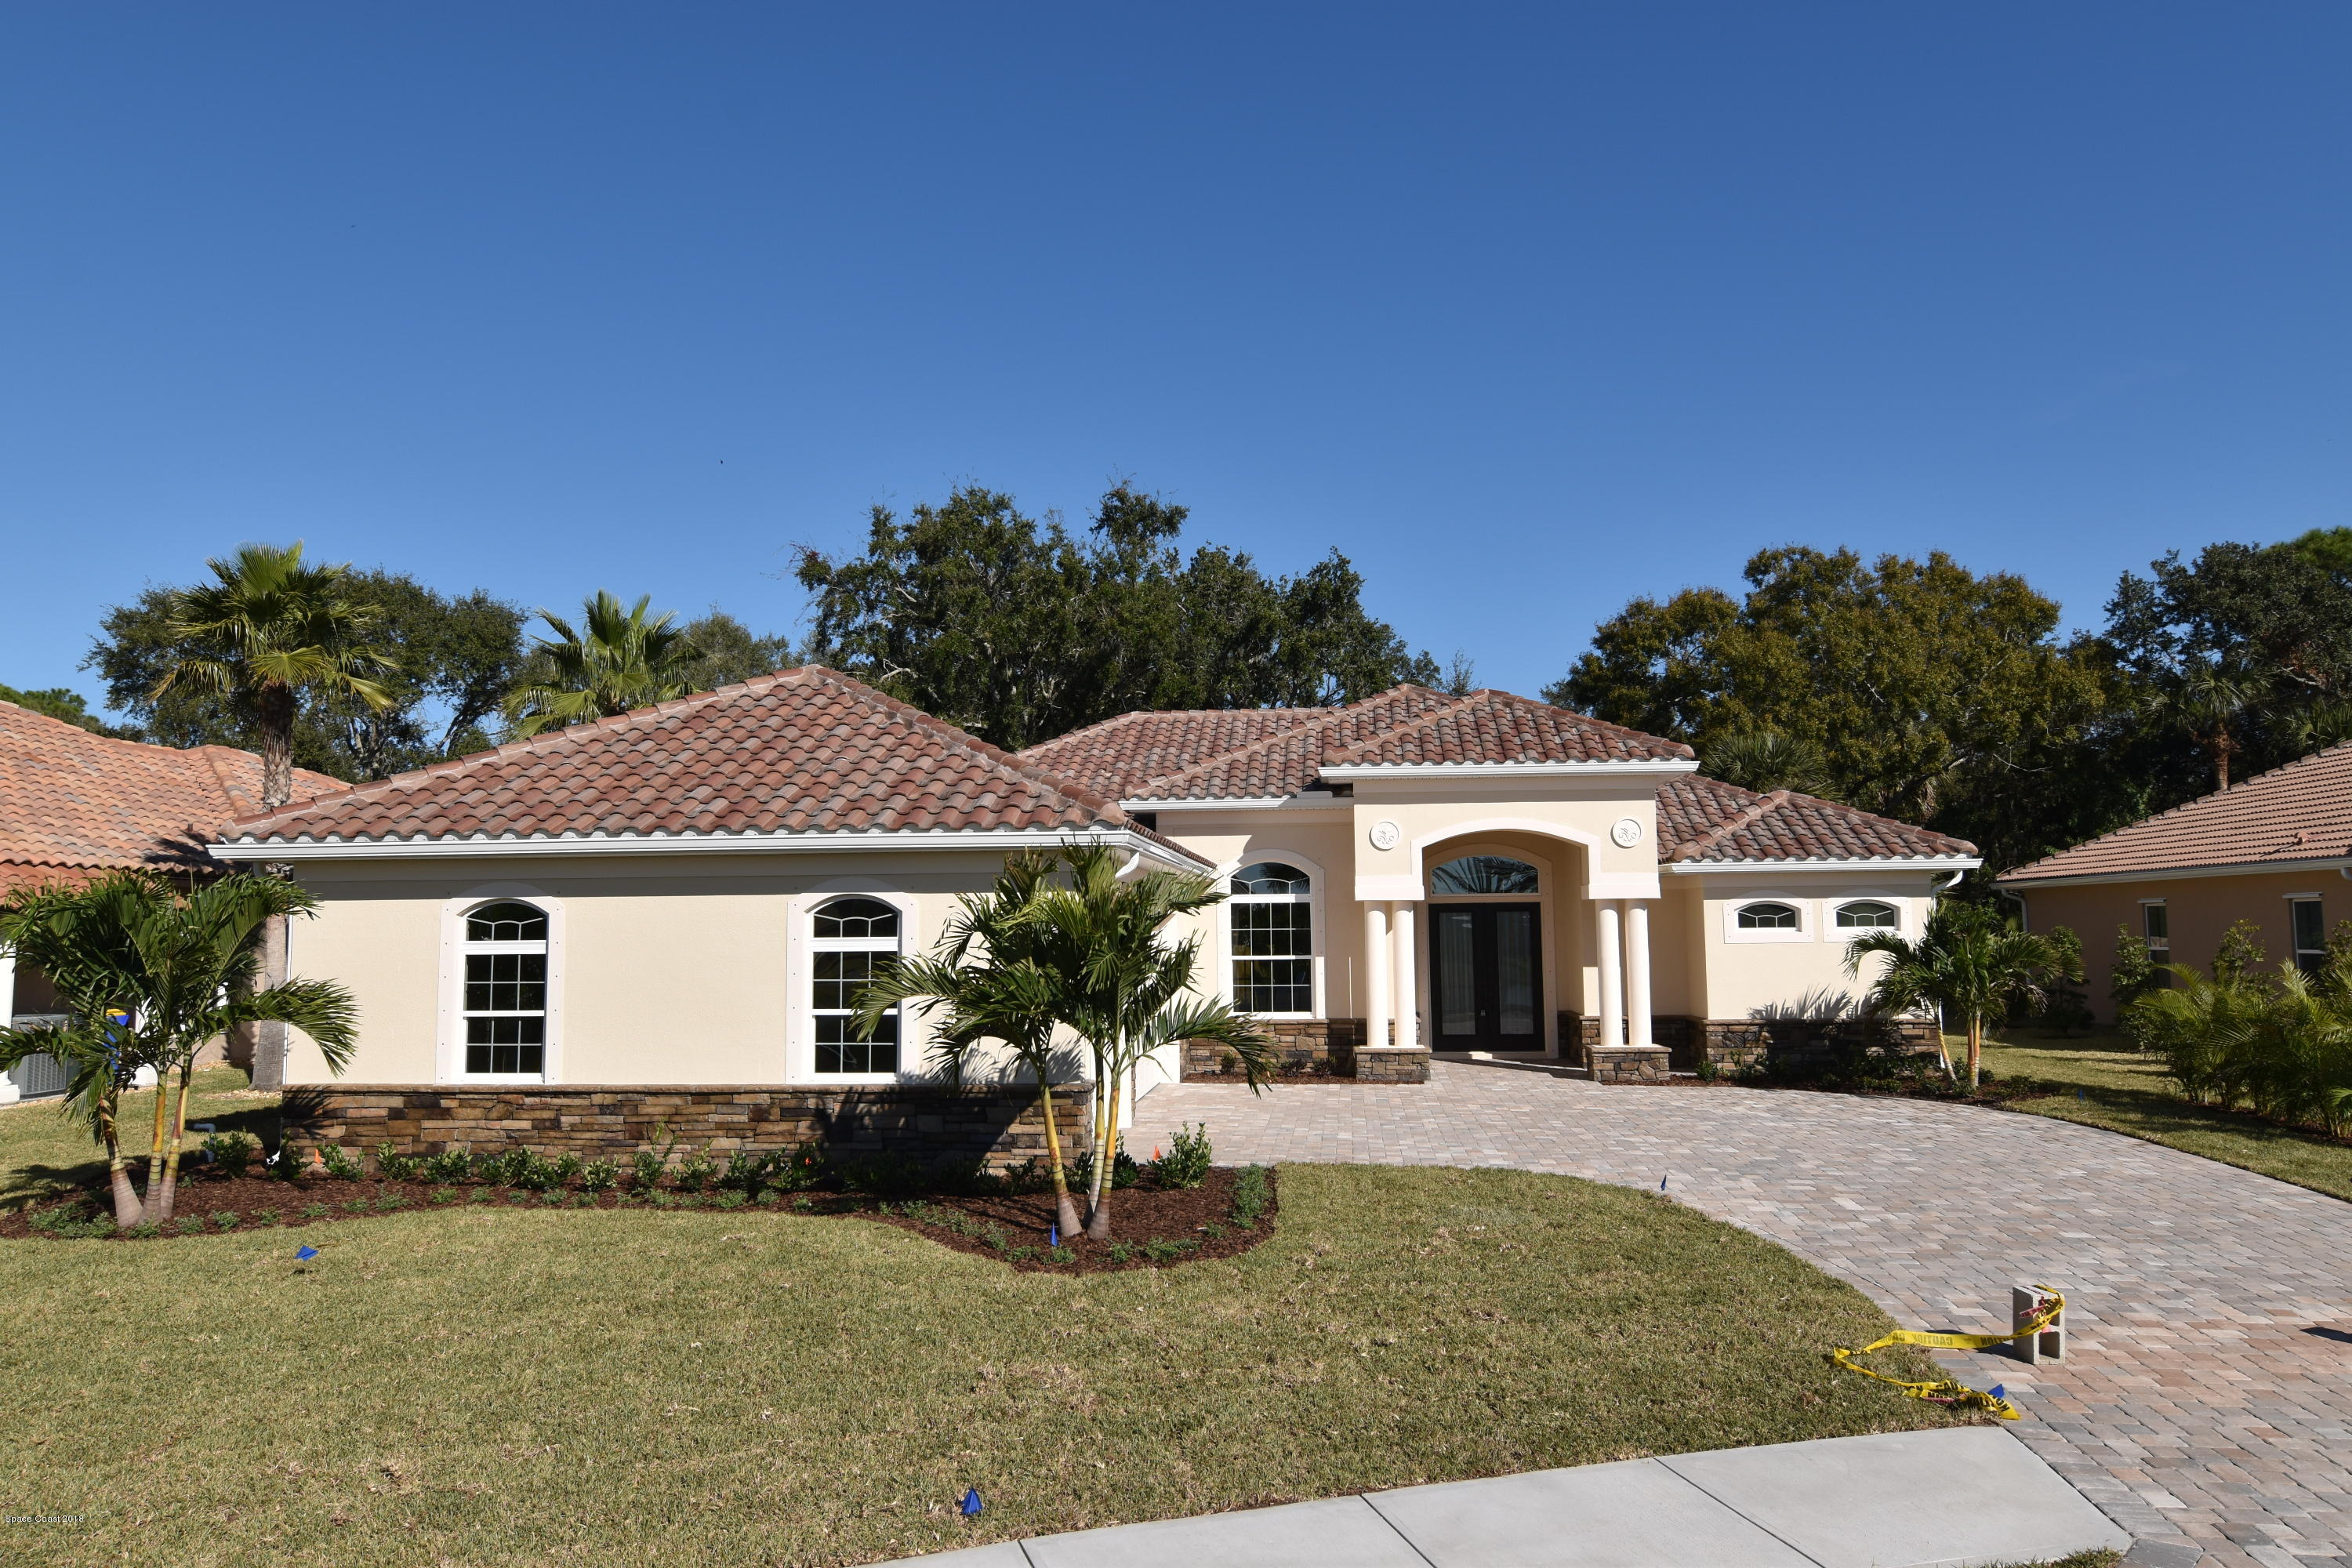 Single Family Homes for Sale at 946 Casa Dolce Casa Rockledge, Florida 32955 United States